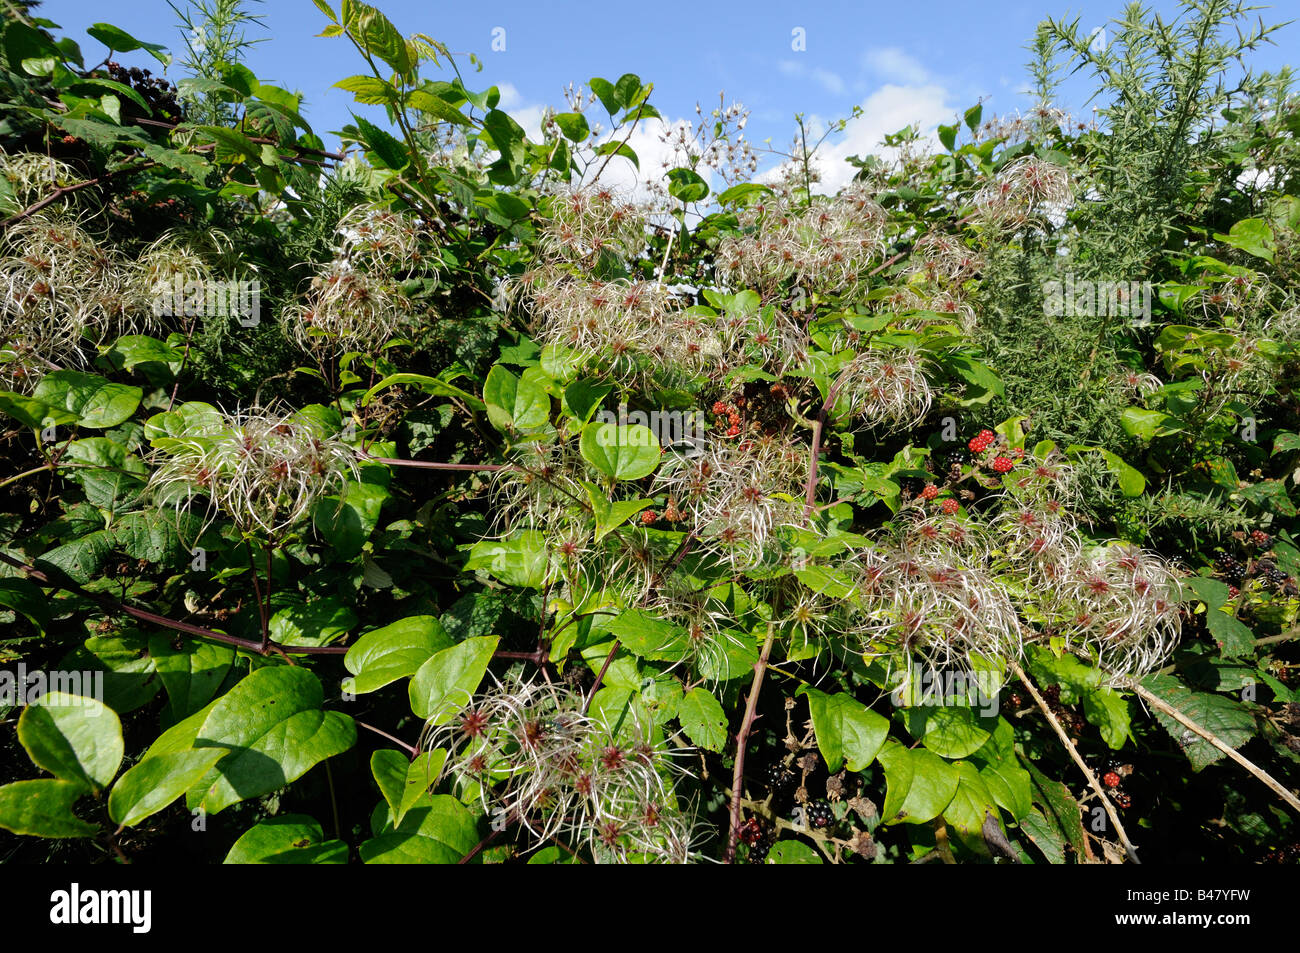 Clematis vitalba old mans beard travellers joy growing in hedgerow showing seed head plumes Norfolk UK September - Stock Image